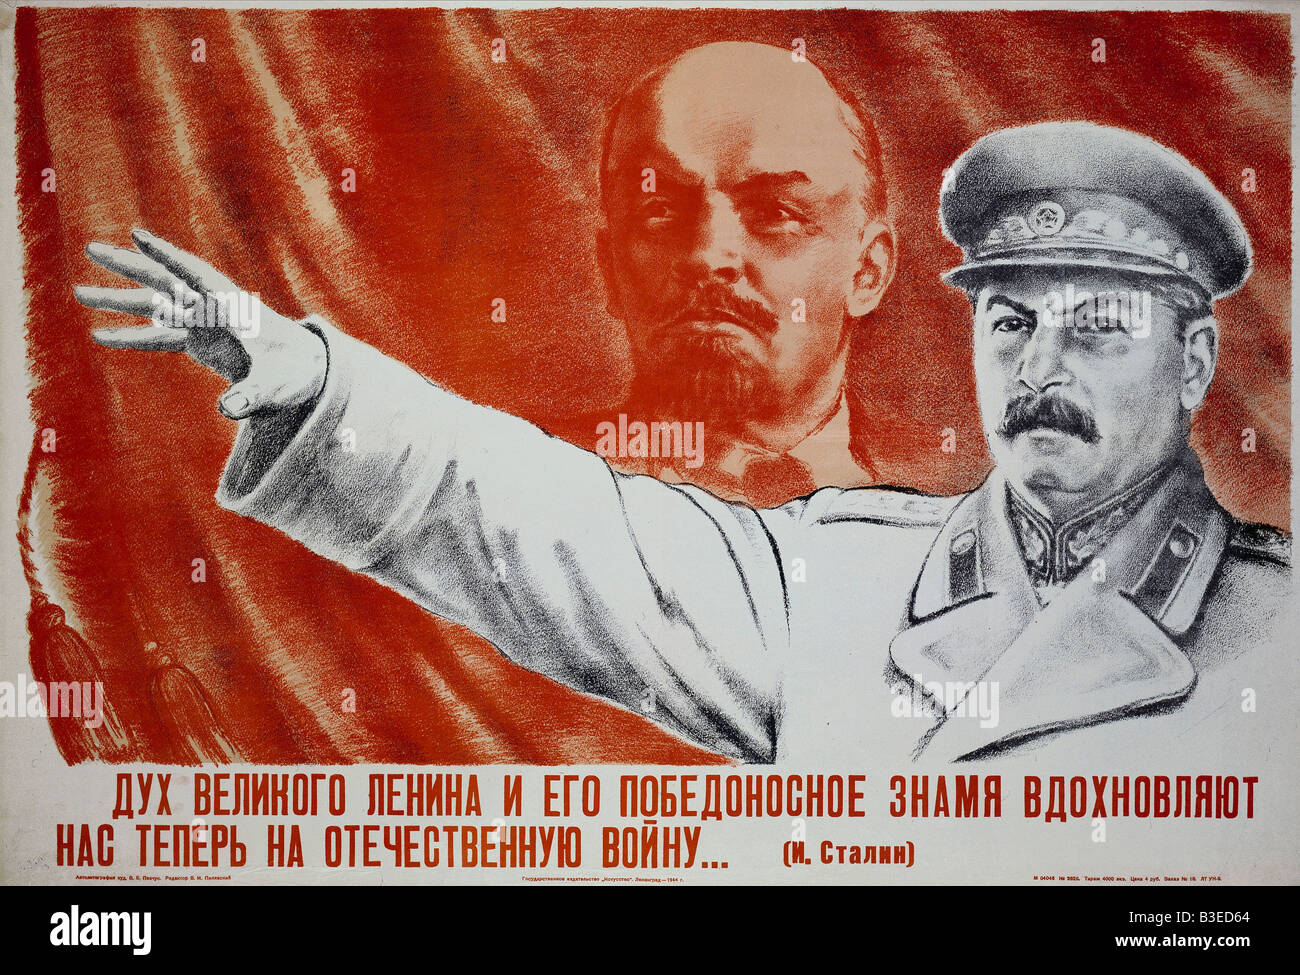 Stalin / Poster / 1944 - Stock Image